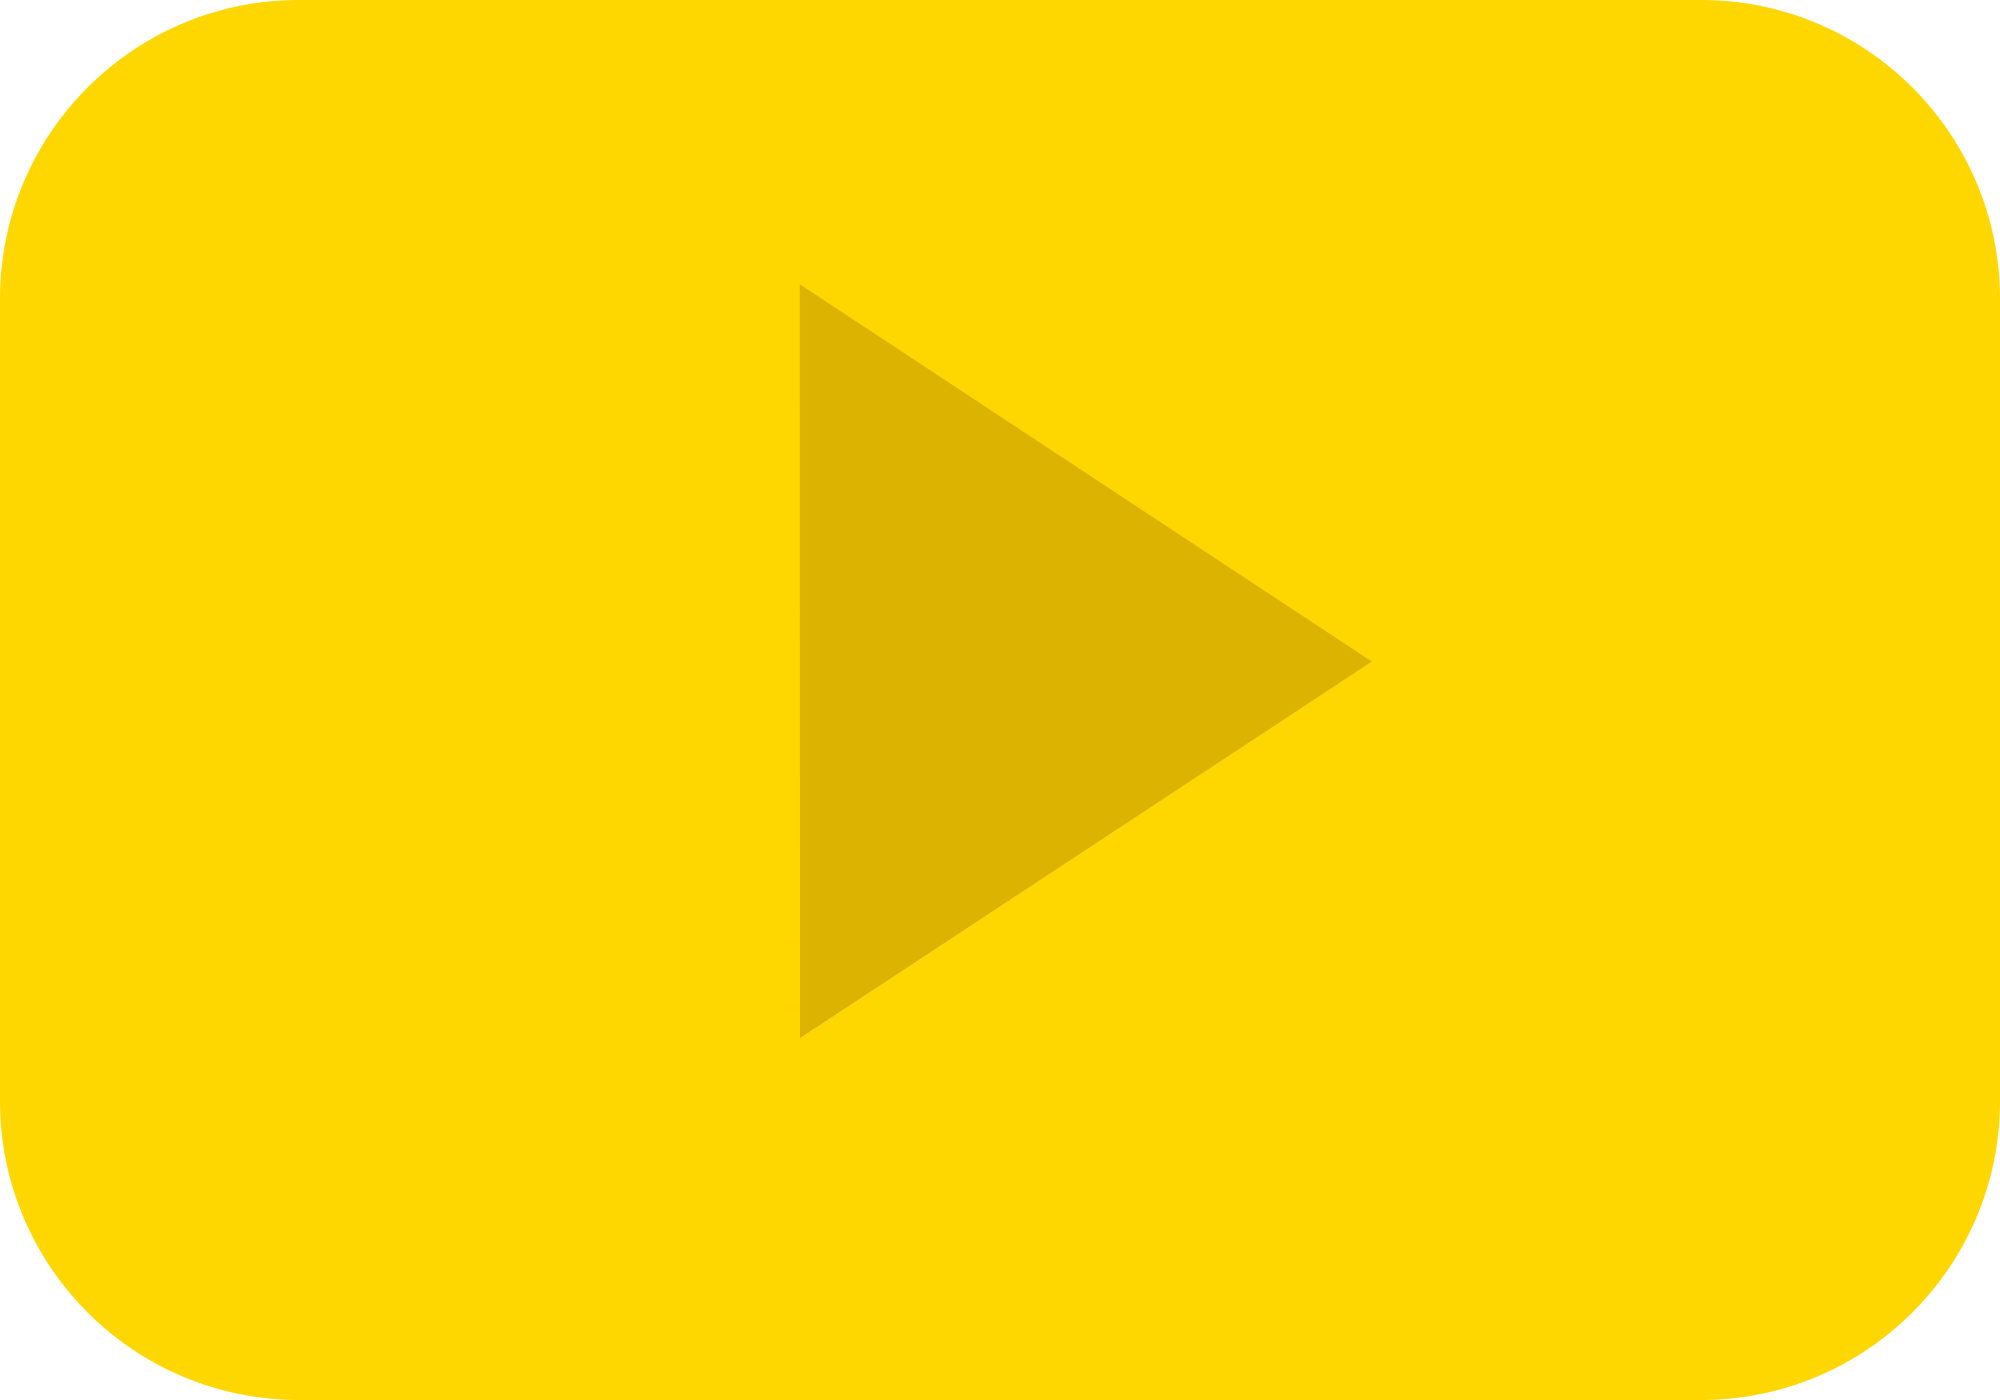 Image youtube gold play. Buttons clipart file